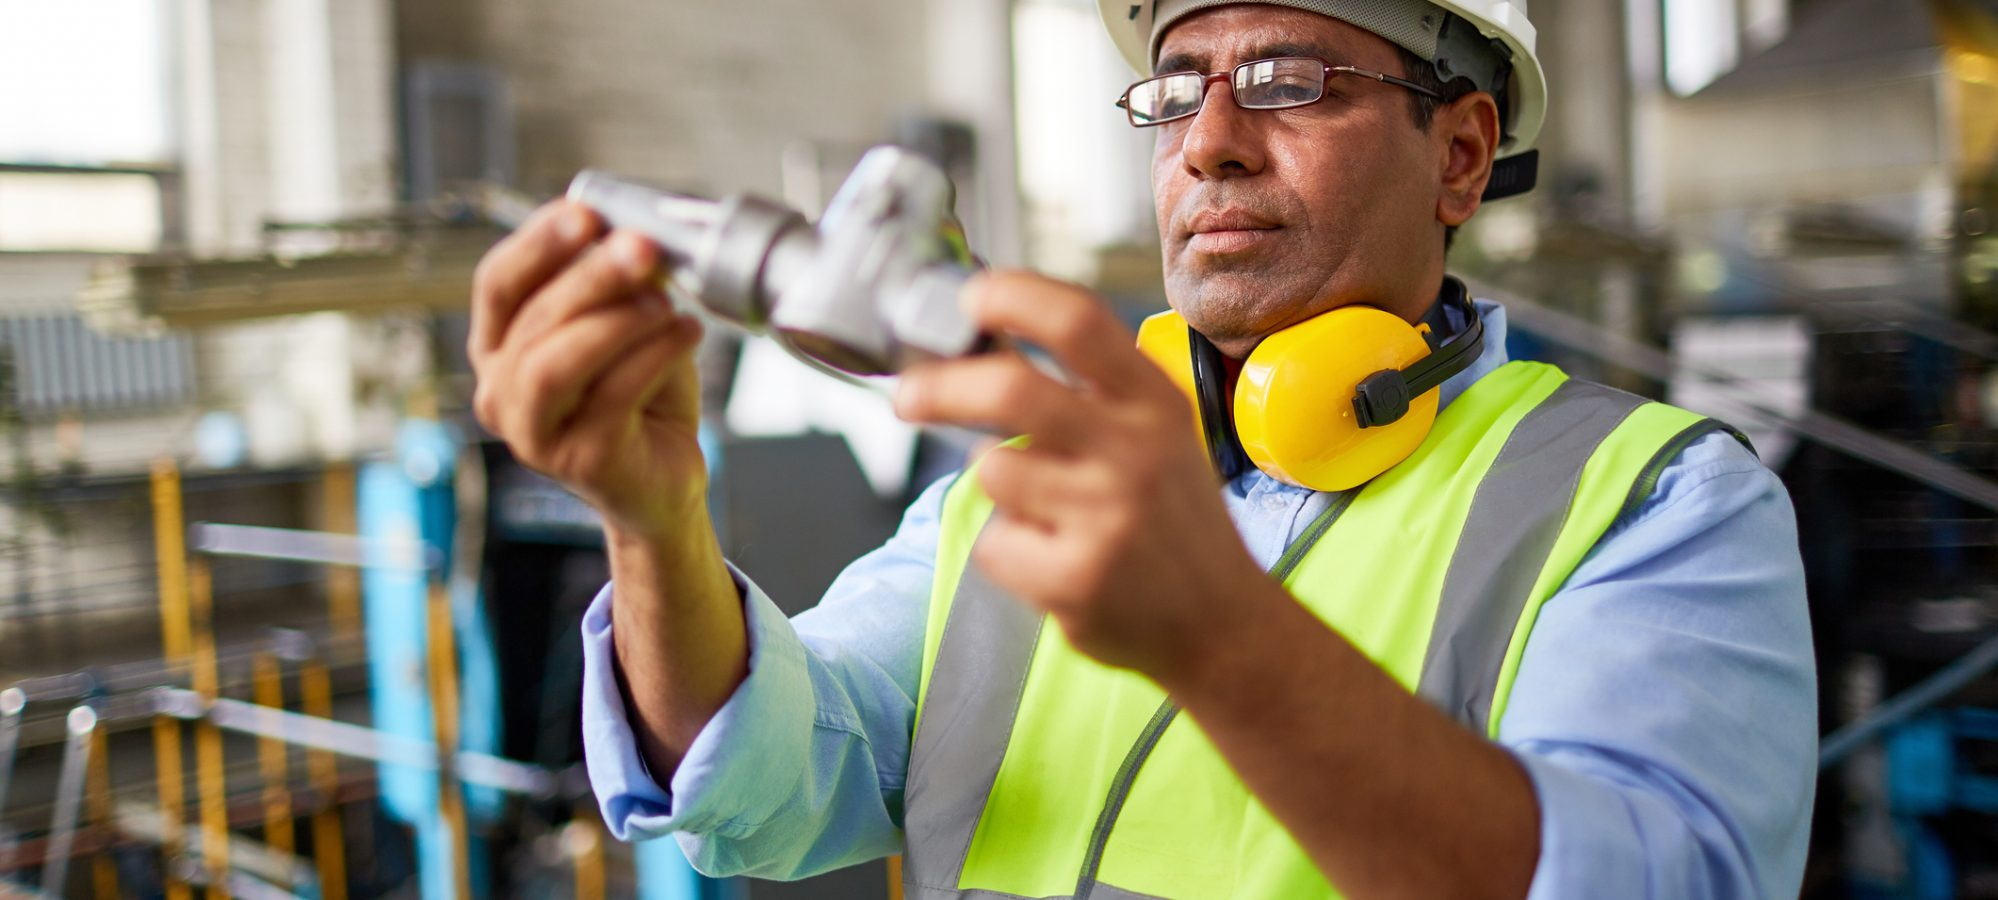 Technician checking product for quality control - activity could qualify for PPT exemption